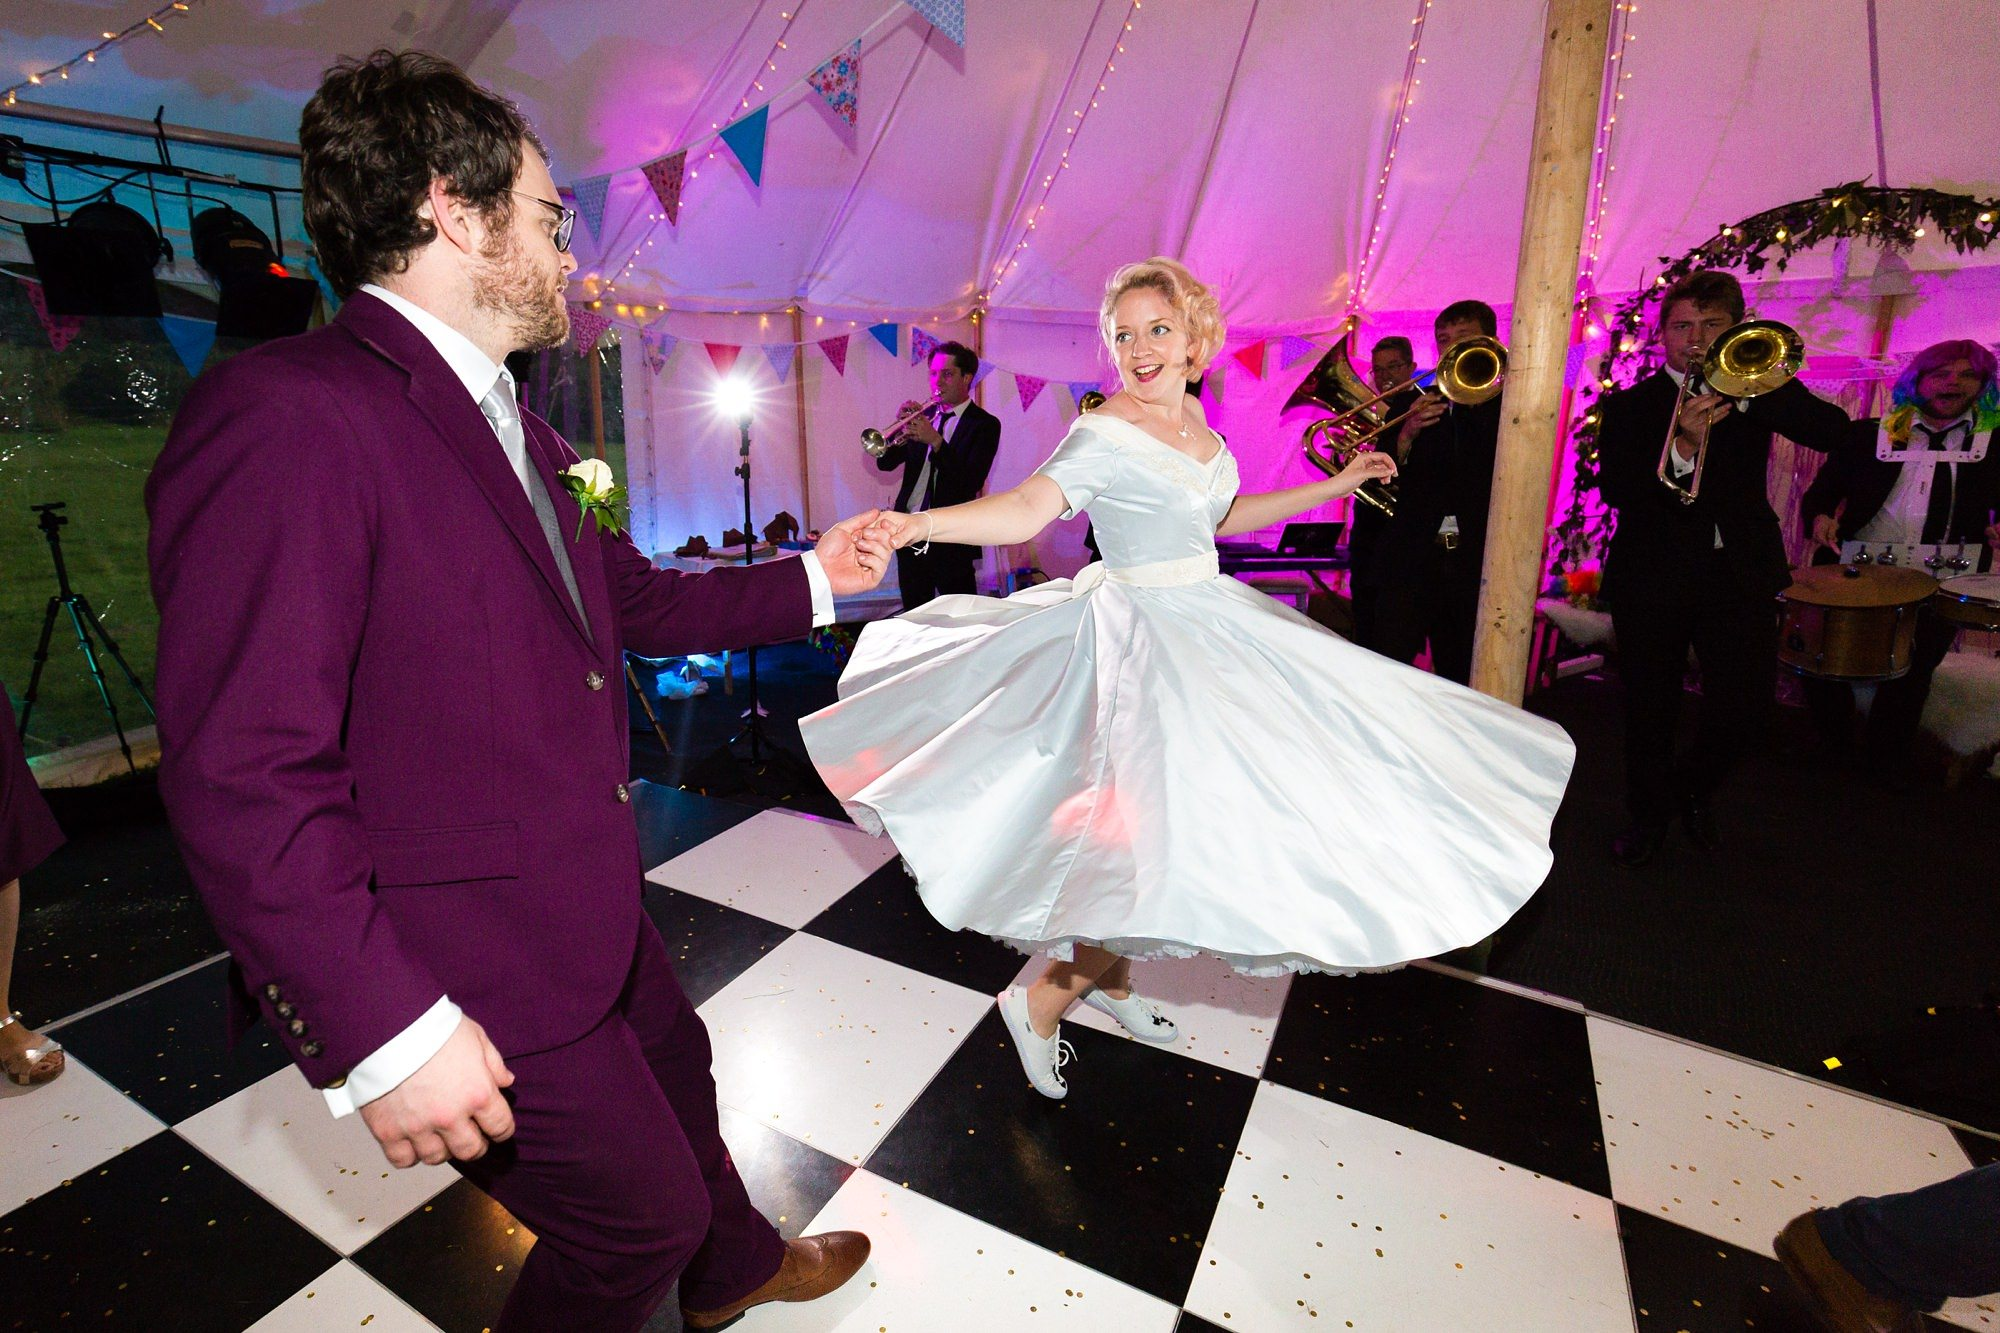 Twirly blue wedding dress dancing on chequerboard floor Derwentwater Independent Hostel Wedding